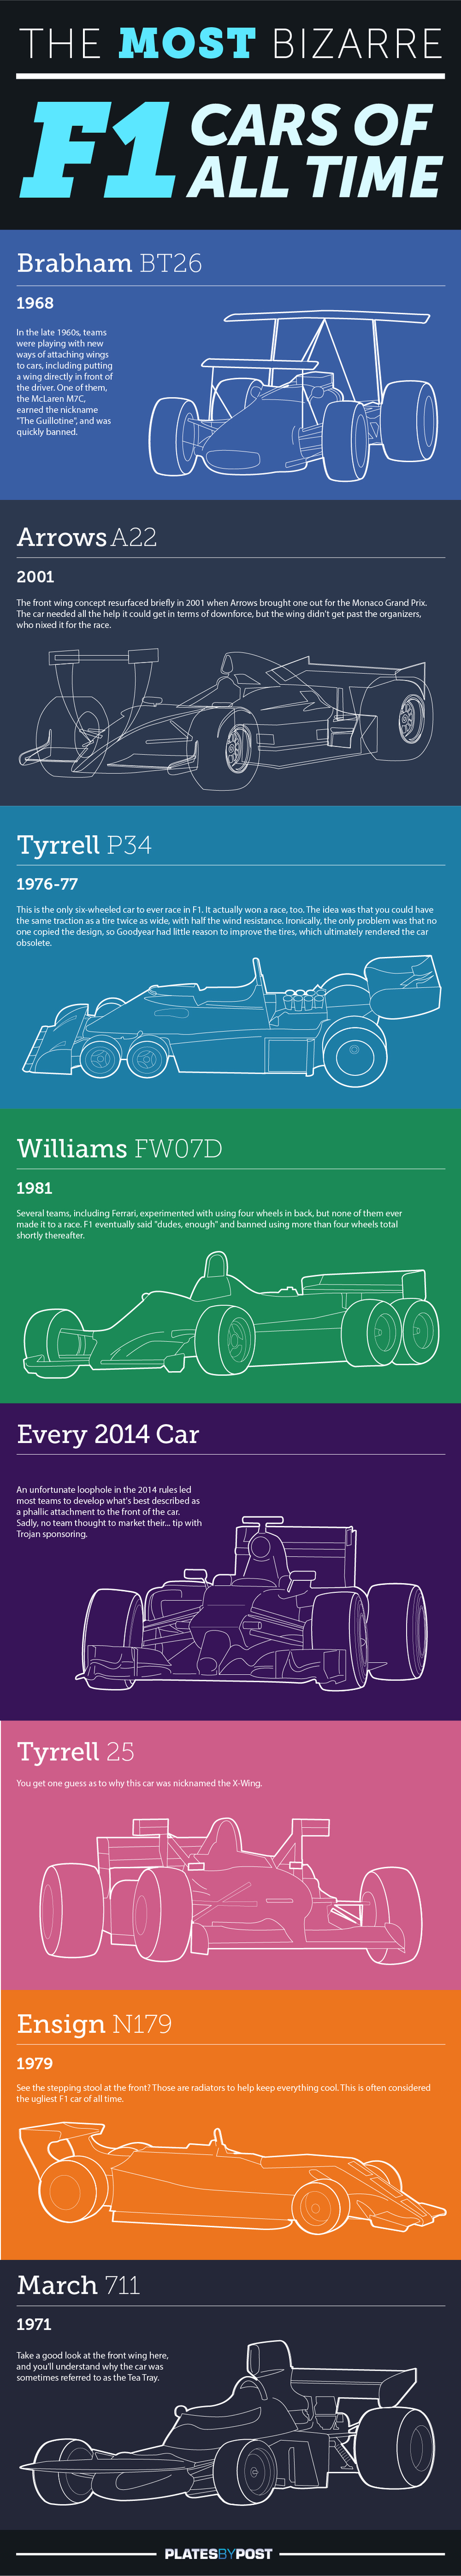 The Most Bizarre F1 Cars Of All Time by Platesbypost